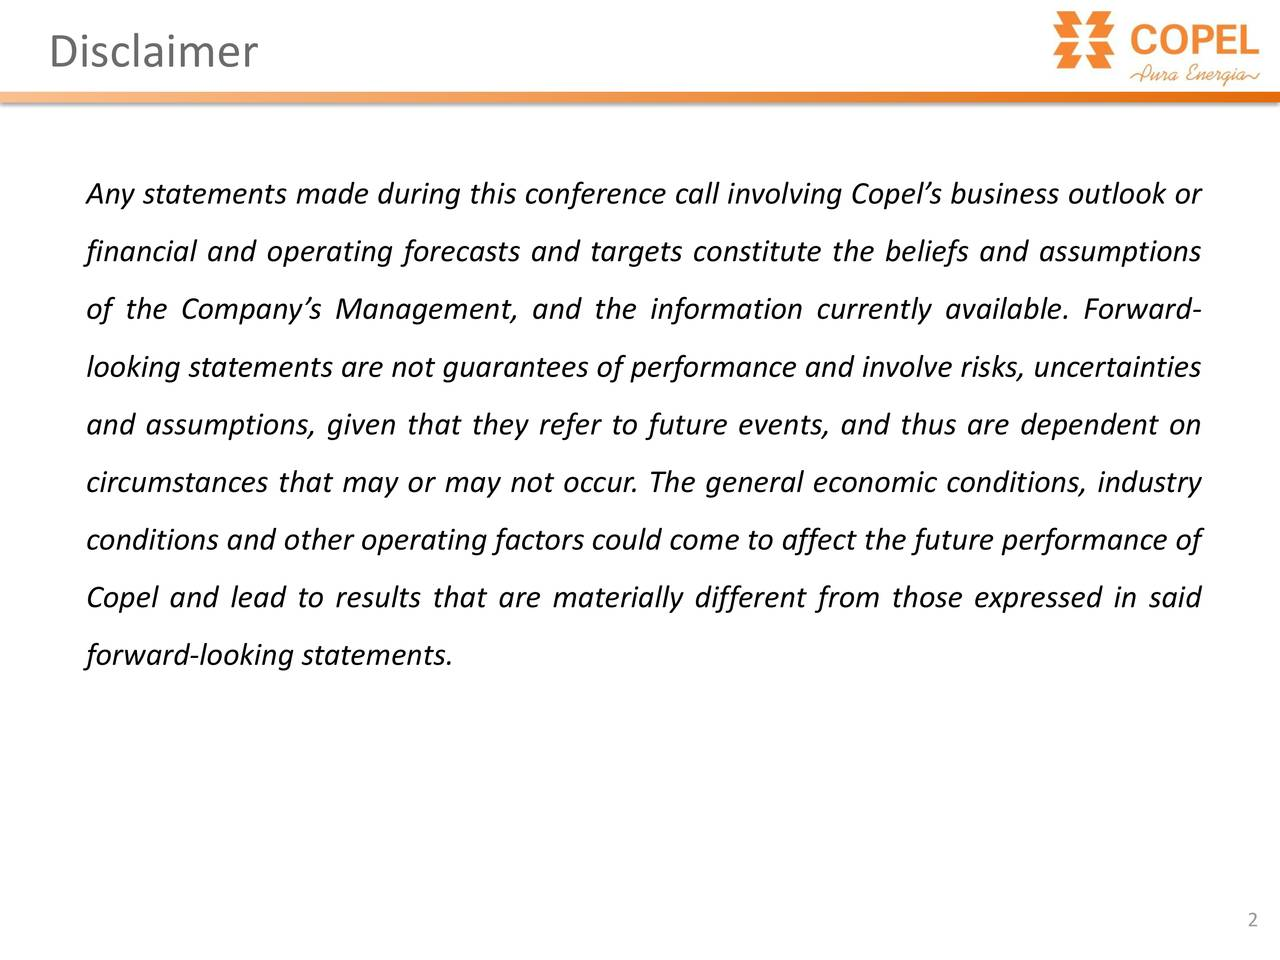 Any statements made during this conference call involving Copel's business outlook or financial and operating forecasts and targets constitute the beliefs and assumptions of the Company's Management, and the information currently available. Forward- looking statements are not guarantees of performance and involve risks, uncertainties and assumptions, given that they refer to future events, and thus are dependent on circumstances that may or may not occur. The general economic conditions, industry conditions and other operating factors could come to affect the future performance of Copel and lead to results that are materially different from those expressed in said forward-looking statements. 2